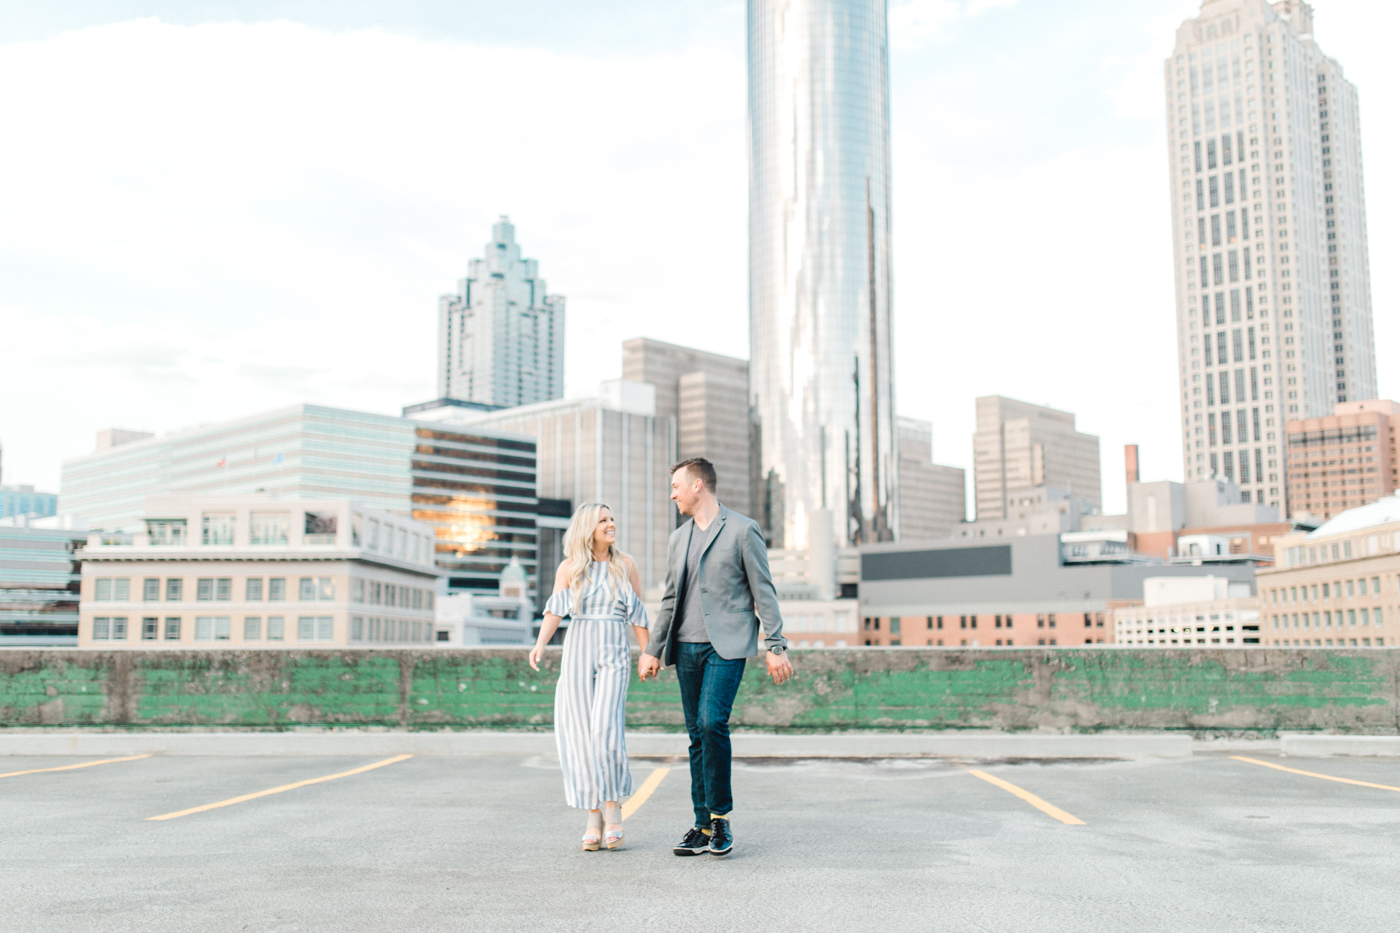 four corners photography best atlanta wedding photographer downtown atlanta engagement session engagement proposal ventanas downtown atlanta wedding atlanta wedding photographer-38.jpg